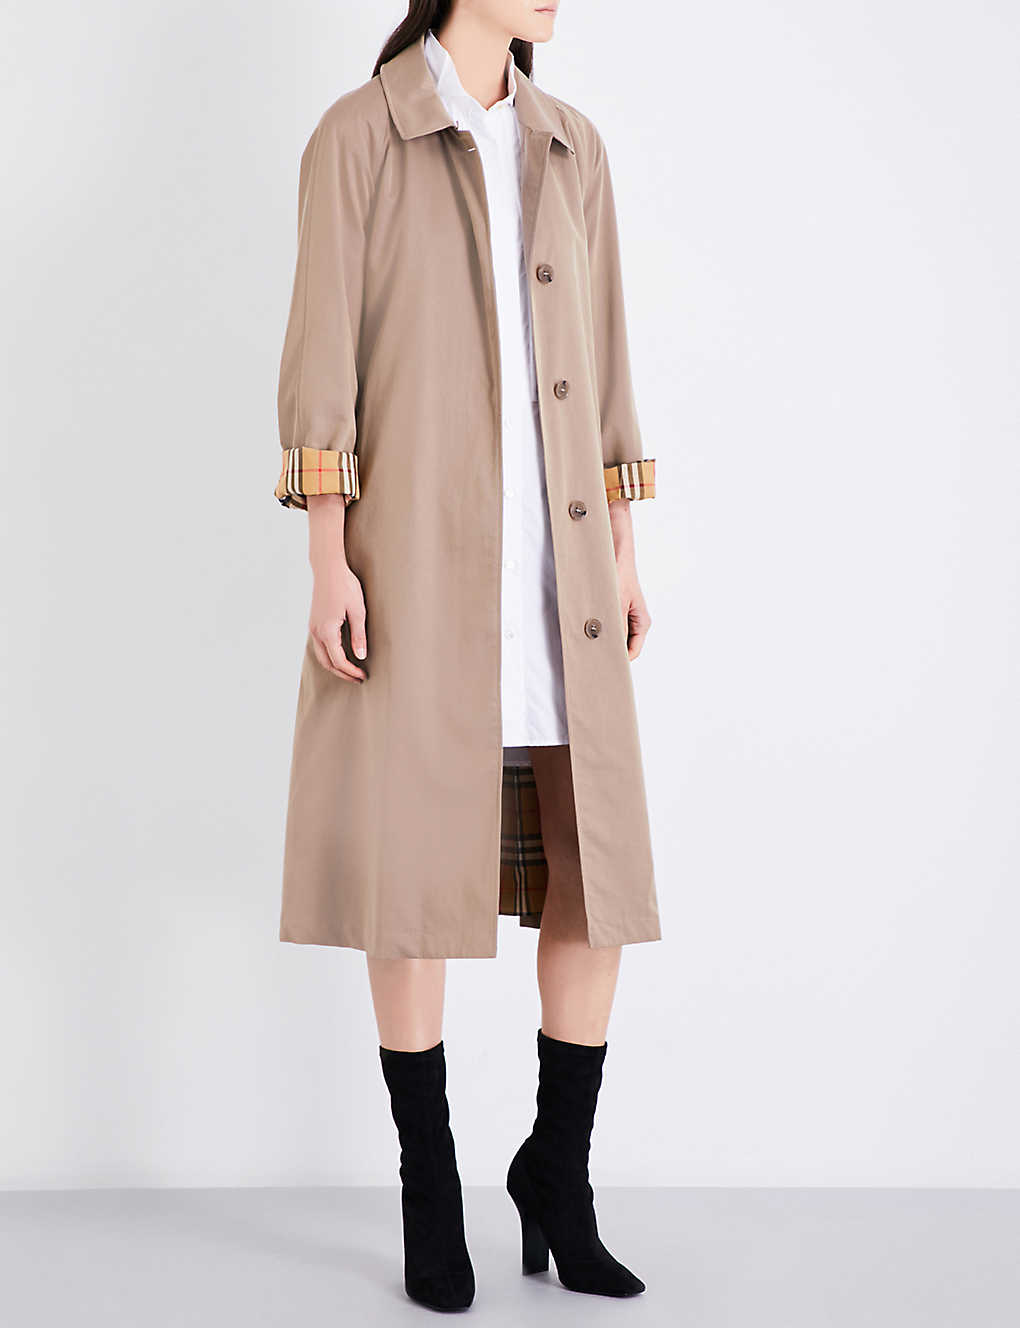 High Quality Sale Online The Brighton Cotton-gabardine Trench Coat - Beige Burberry Sale Pick A Best Cheap 100% Original MOiagm3